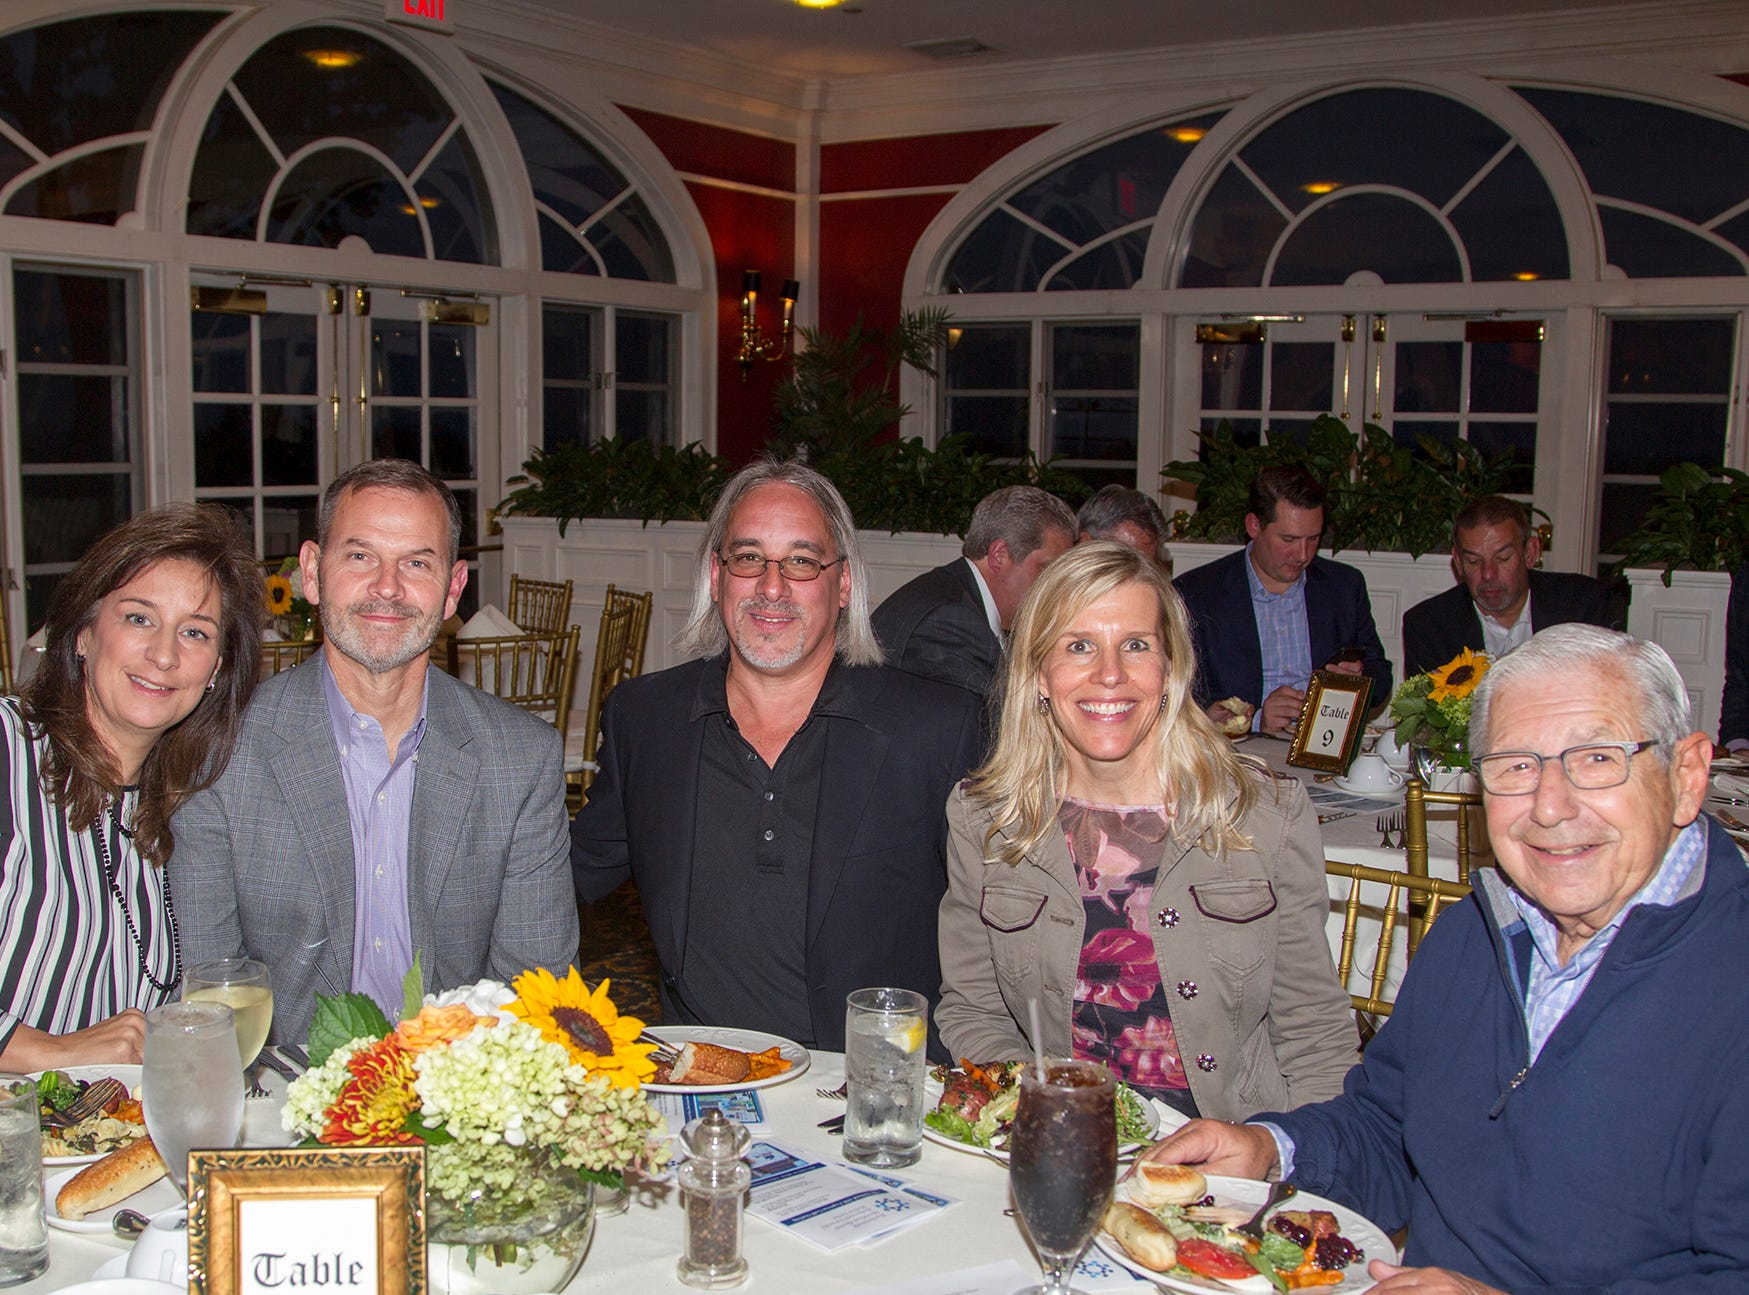 Lanie Duffy, Todd Duffy, Mike Implicito, Arleen Implicito, Dr. George Leinpsner. Seventh annual AIR Express Golf Outing honoring Dr. Dante Implicito, M.D. for his service to Hackensack University Medical Center. 10/16/2018